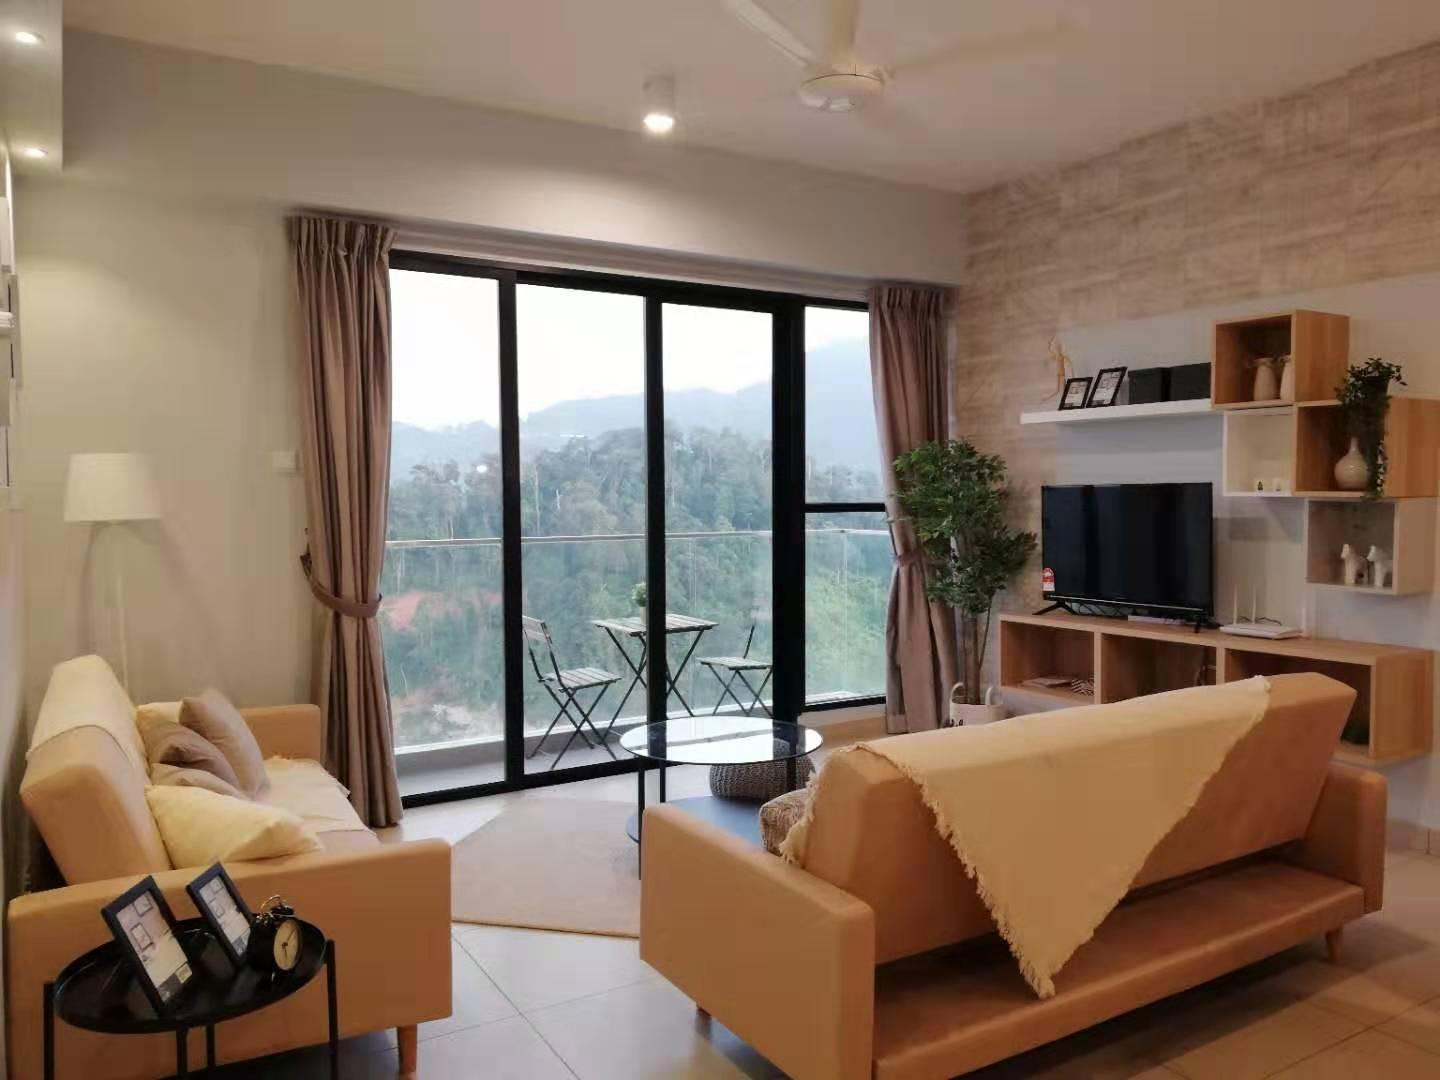 Home Sweet Home 3Room 708 Midhill Genting  WiFi